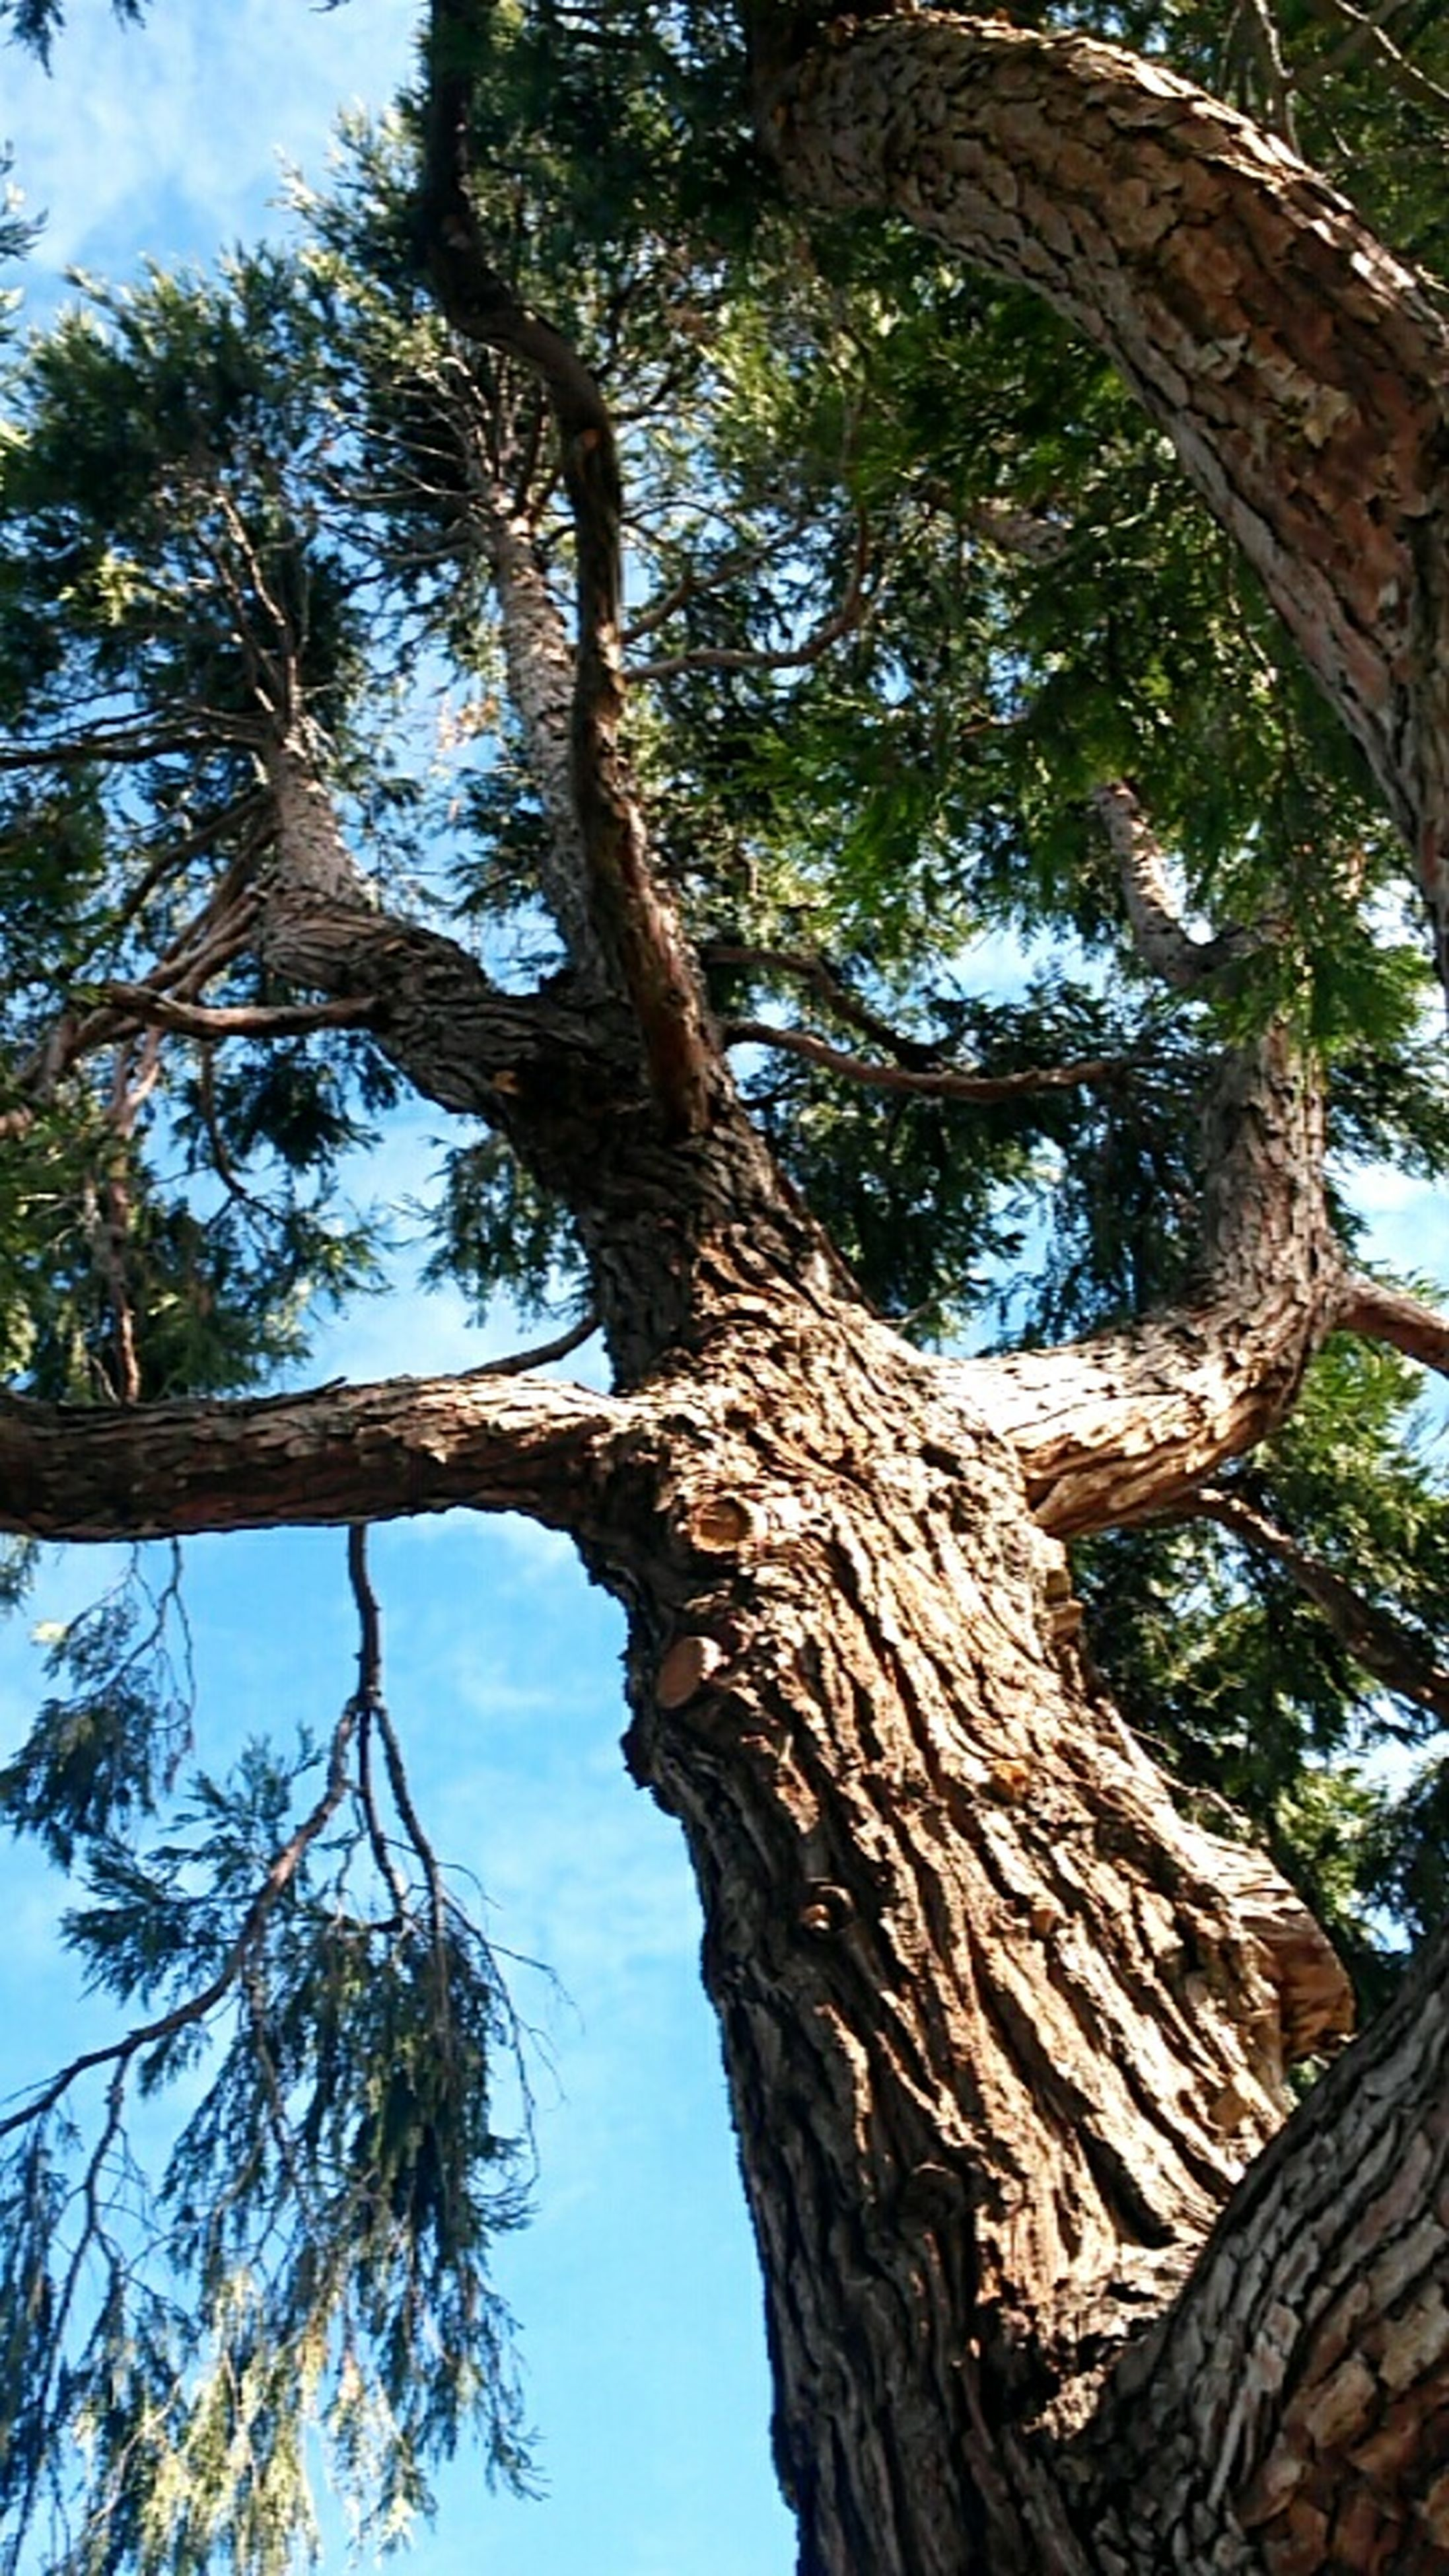 tree, low angle view, tree trunk, branch, growth, nature, tranquility, sky, day, forest, outdoors, no people, wood - material, beauty in nature, clear sky, directly below, sunlight, tall - high, bark, part of